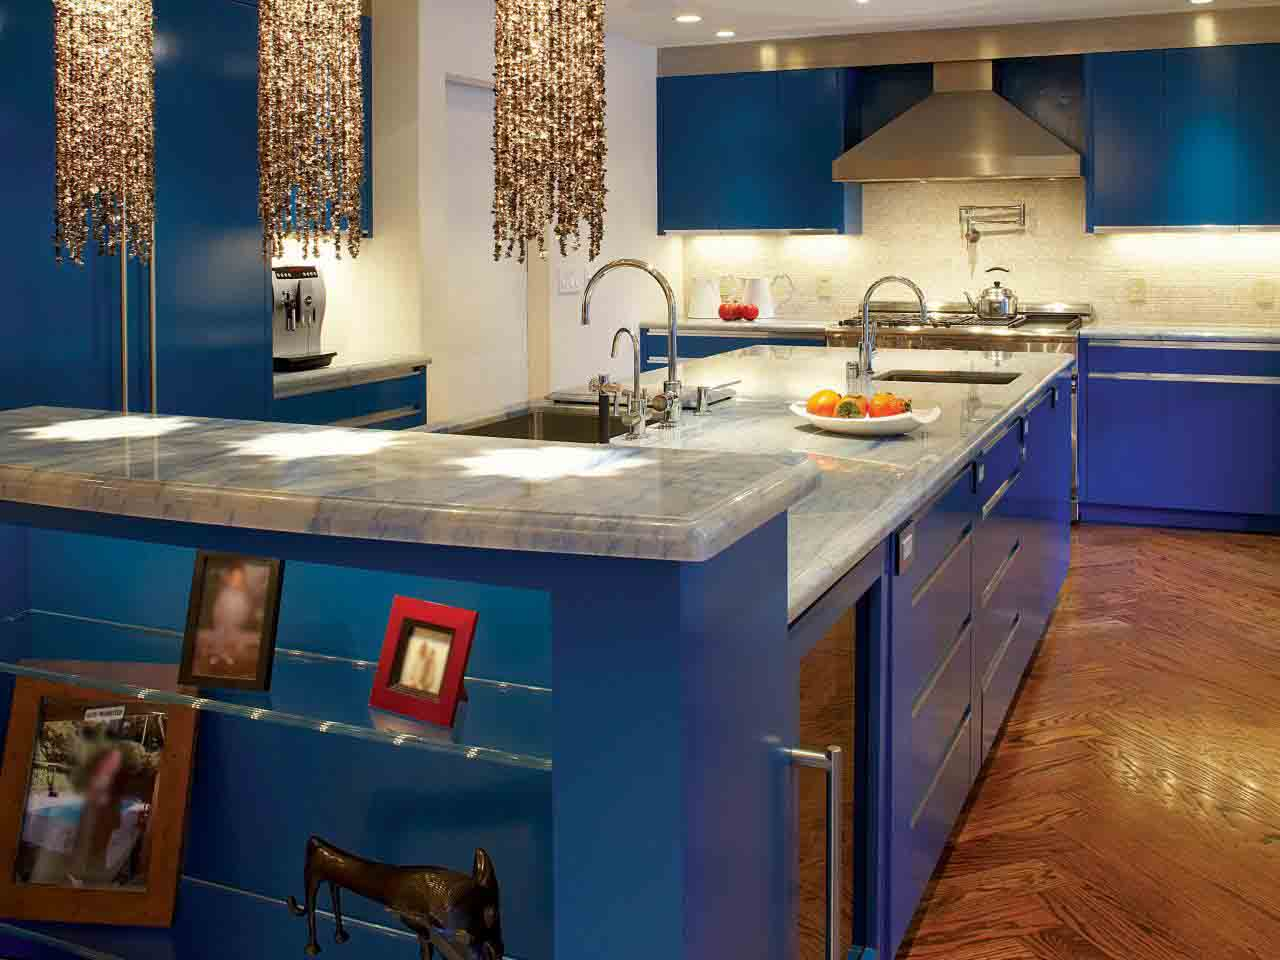 Shiny Blue Kitchen With Pendants